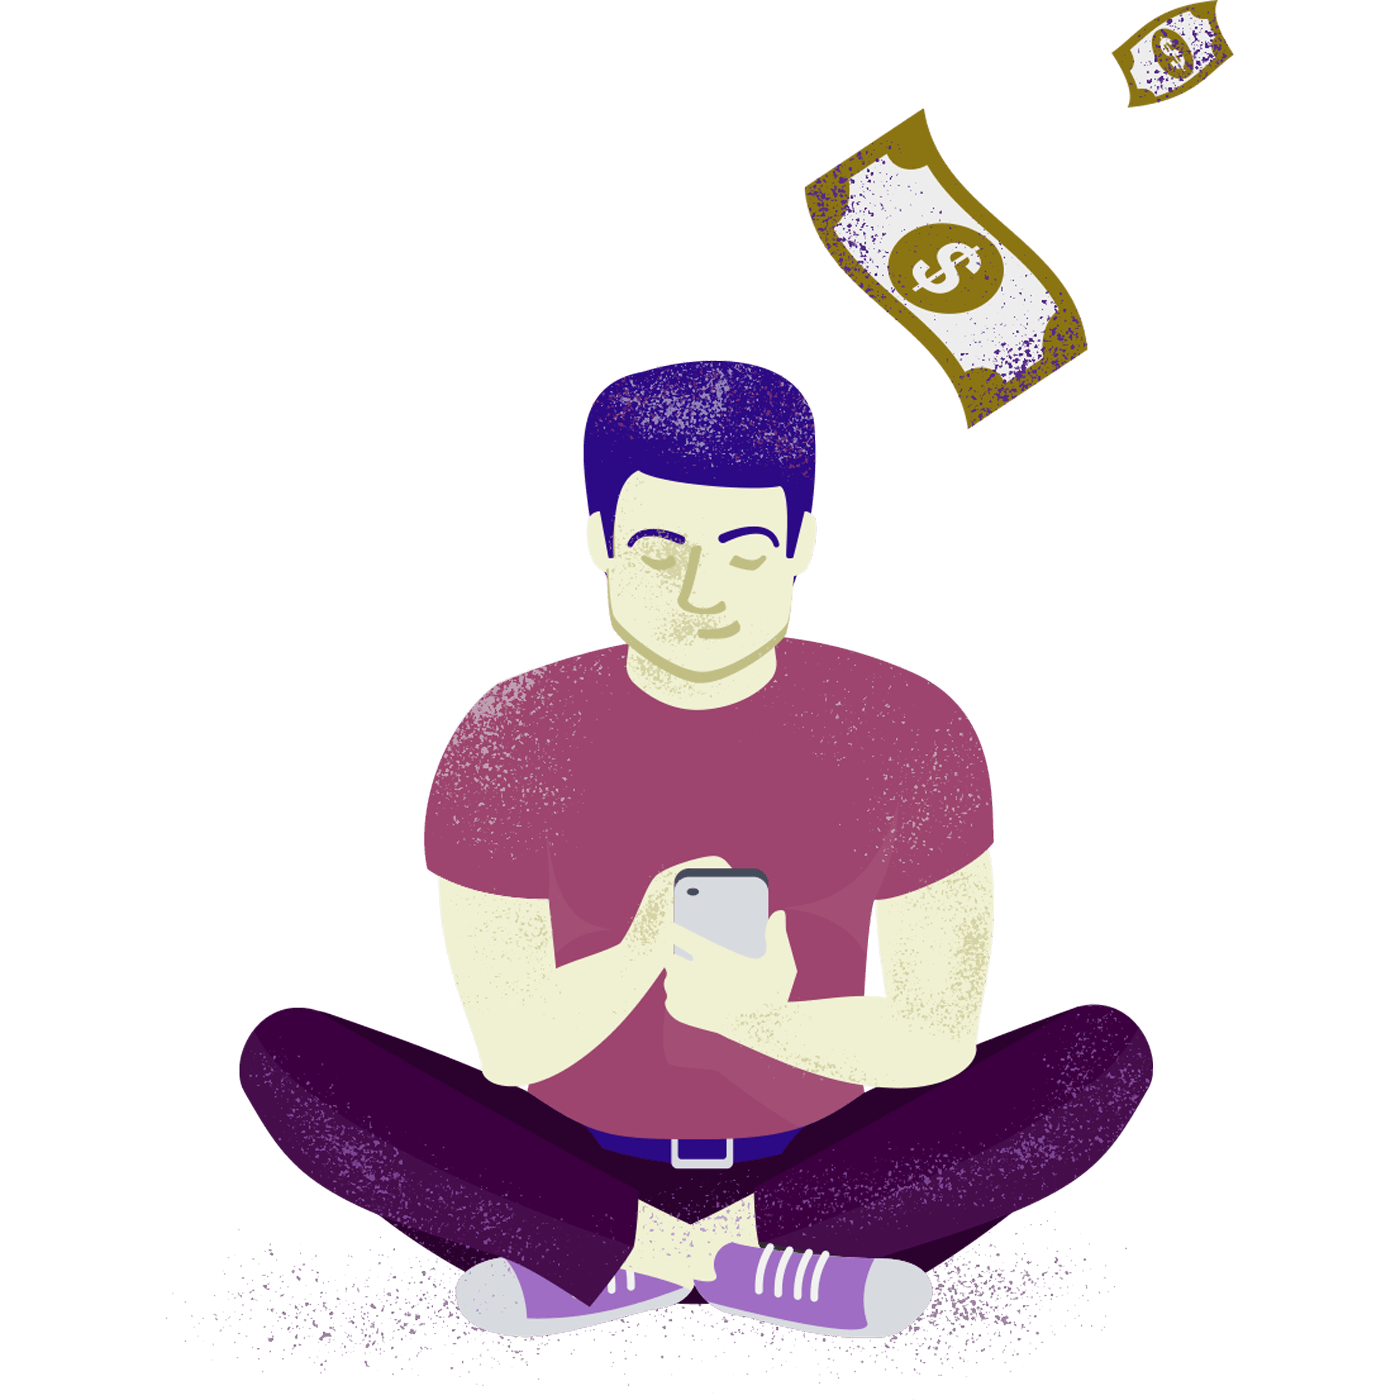 guy-on-phone-sitting